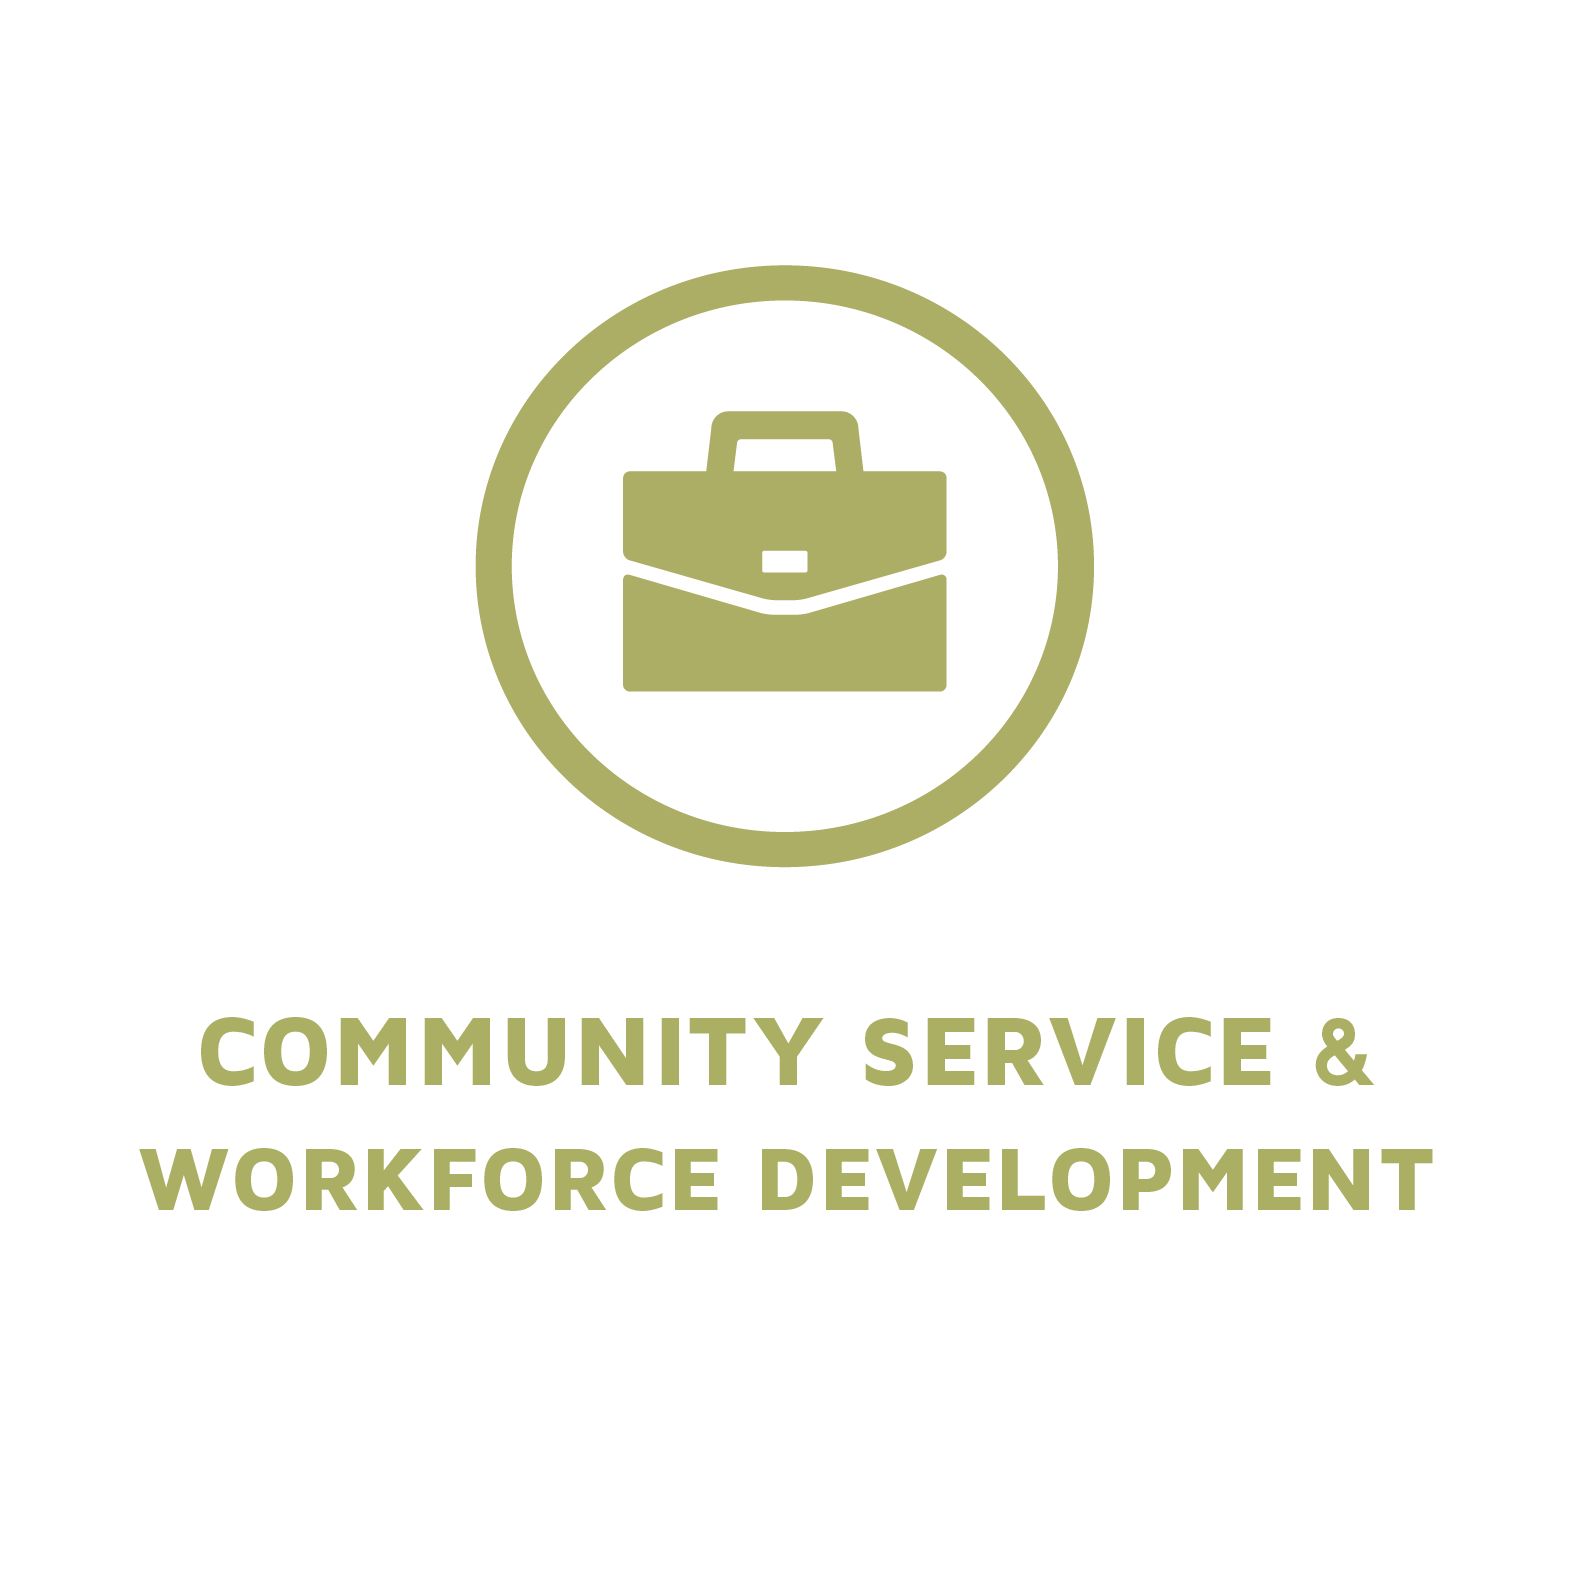 Community Service and Workforce Development Tile